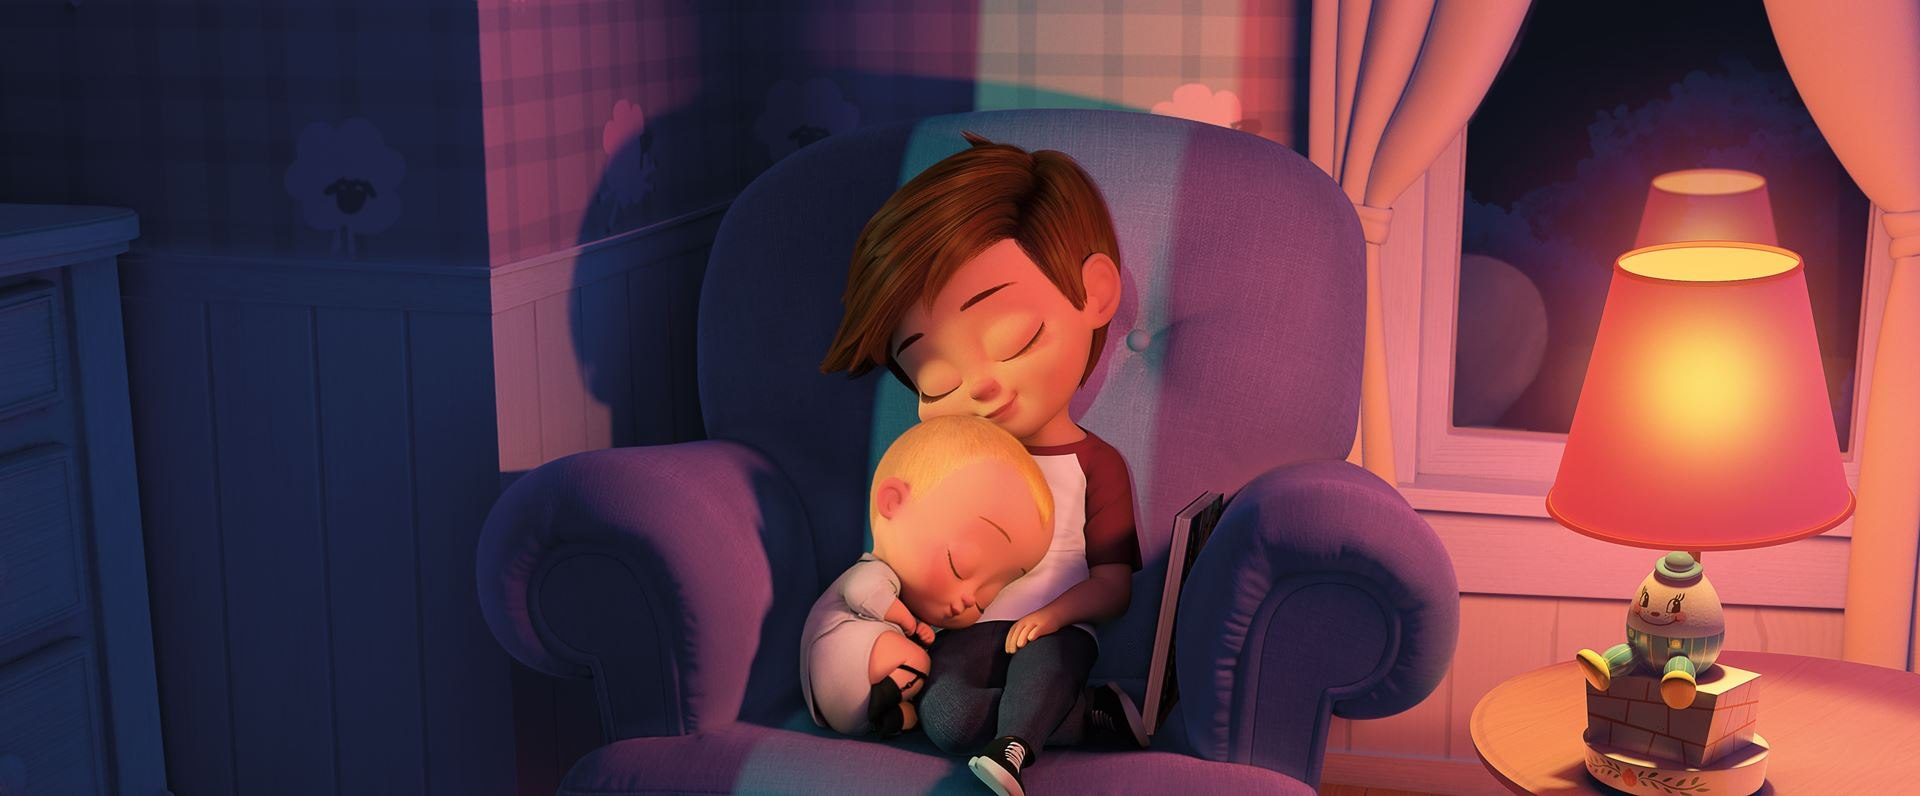 Featurette: DreamWorks Animation's 'The Boss Baby' Now on